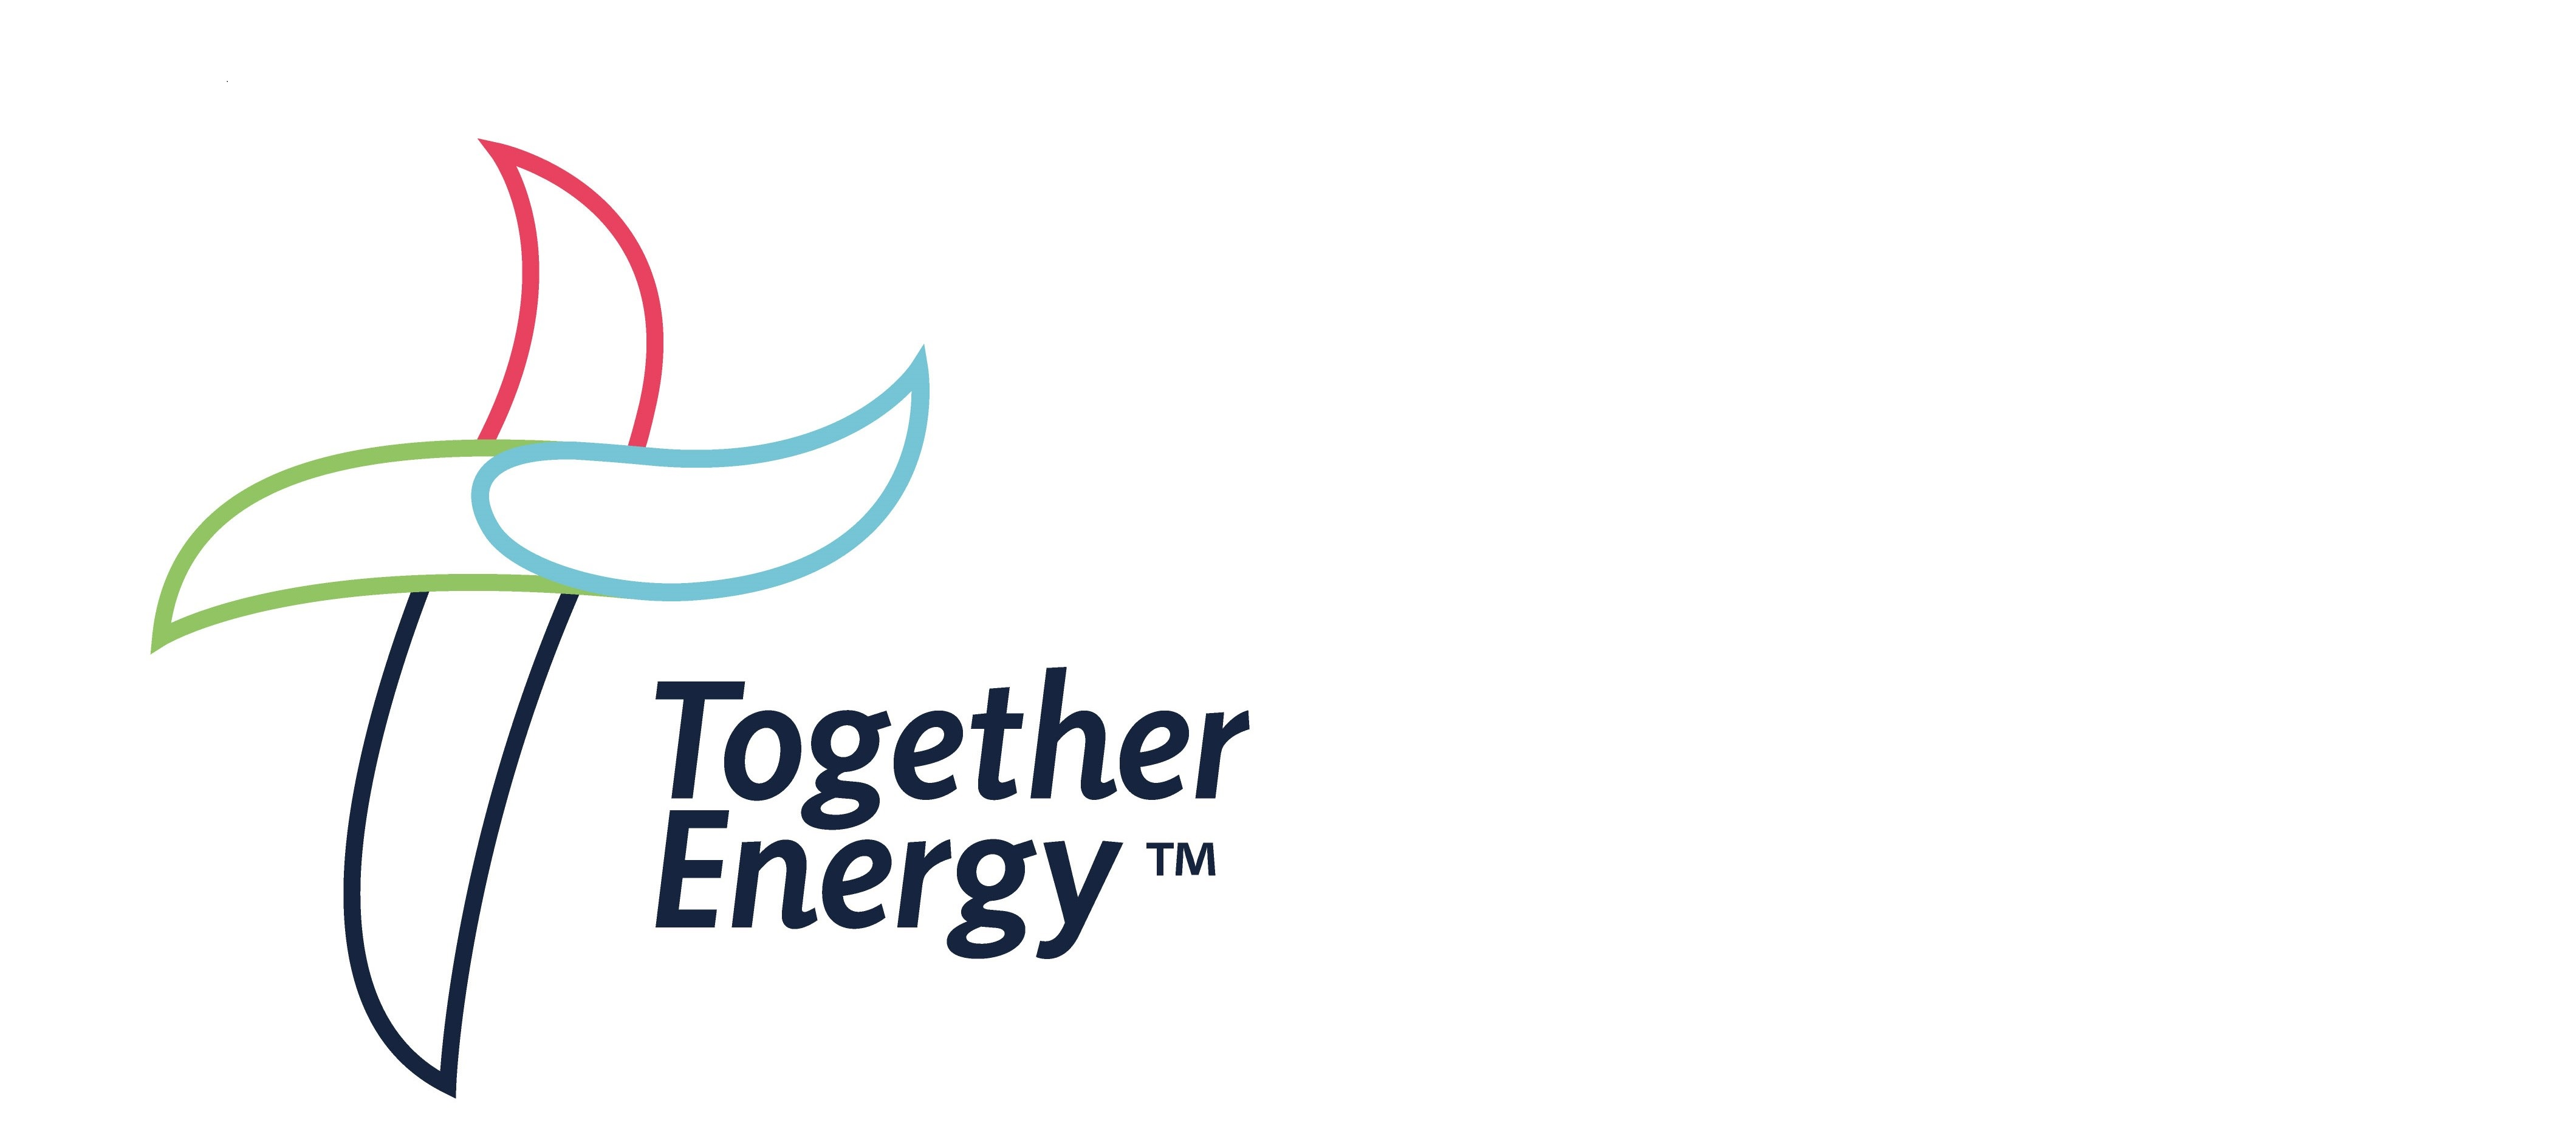 Together Energy - One of the UK's fastest growing energy companies